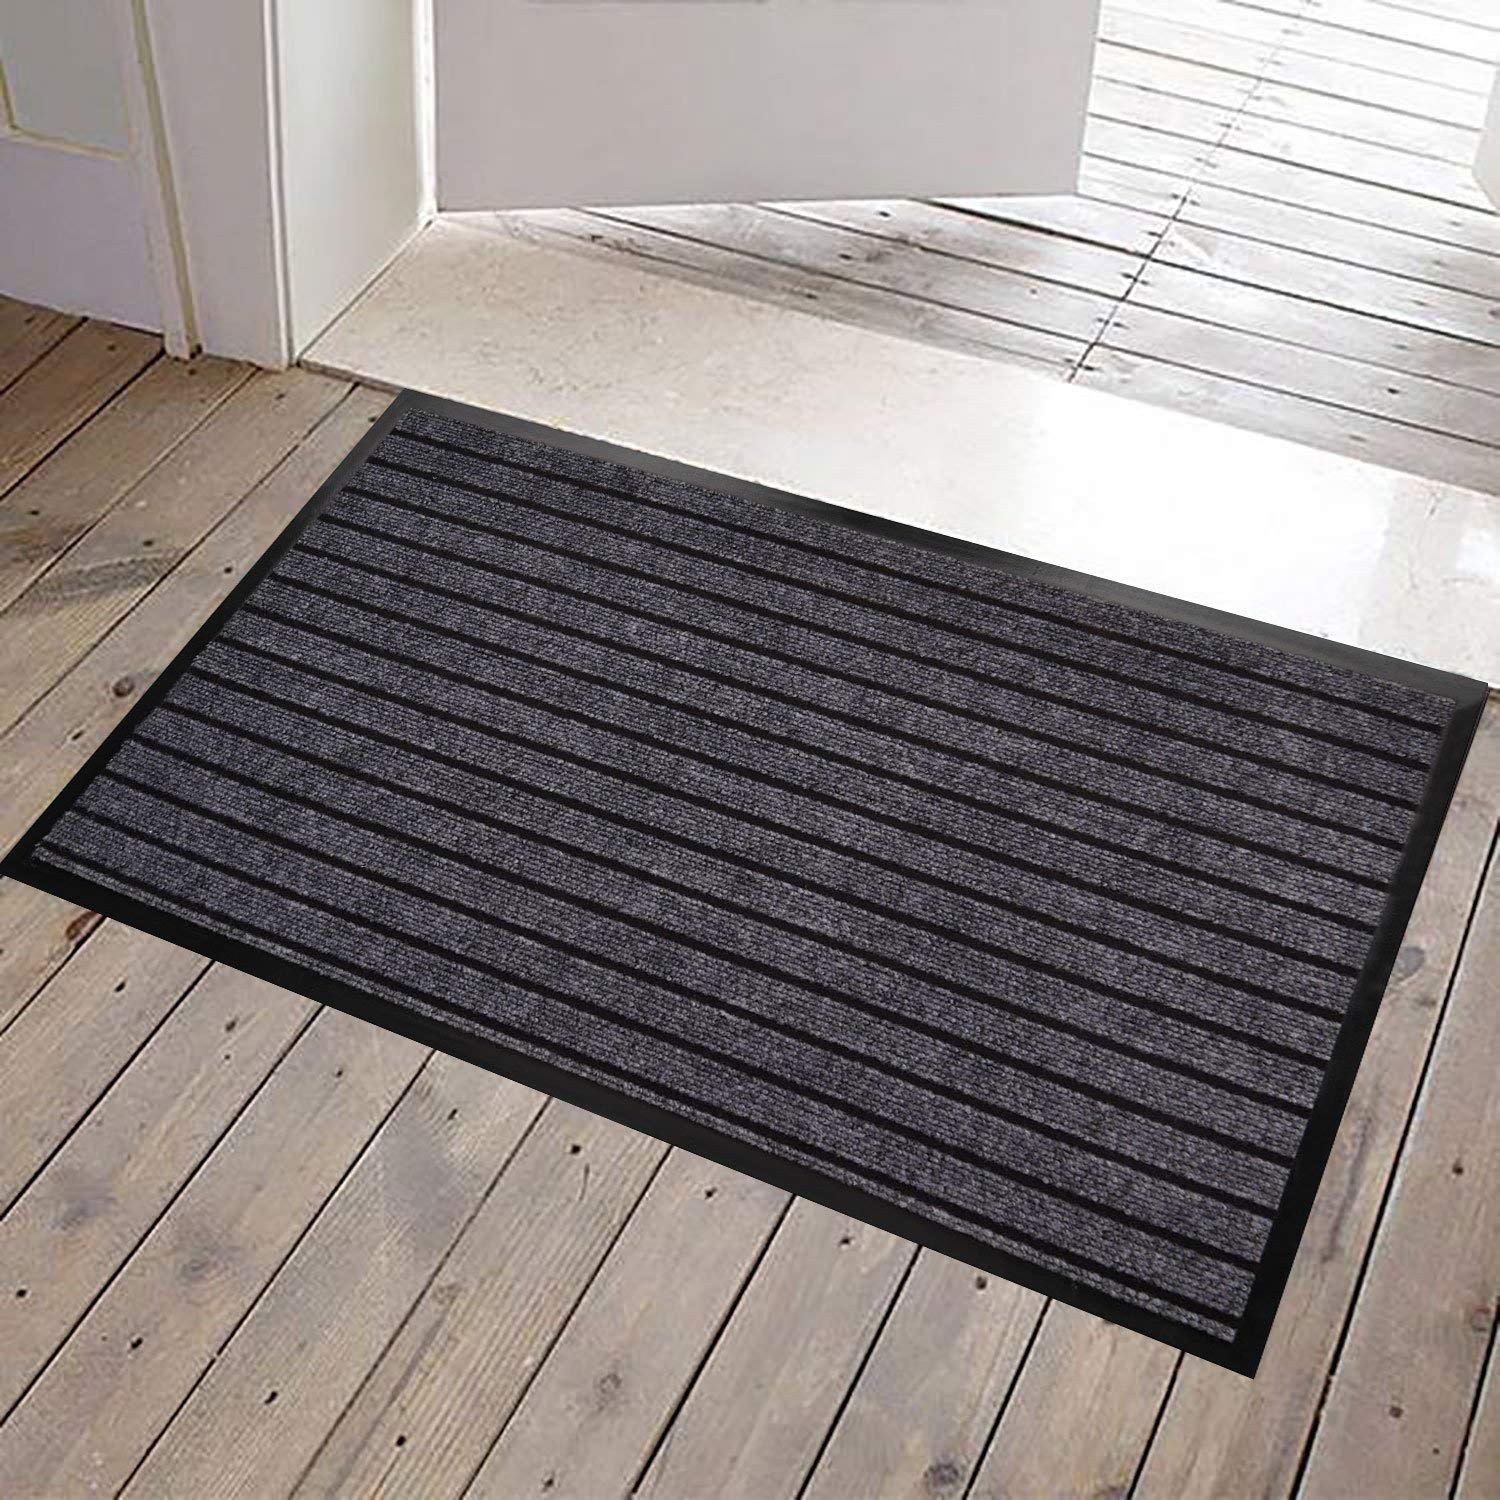 JINWEN JWGJW 3333-1 Large Outdoor Door Mats Rubber Front Entrance Outside Doormat 24''x 36'' Patio Rug Dirt Debris Mud Trapper Waterproof Out Door Mat Profile Washable Carpet Several Colors(Gray)